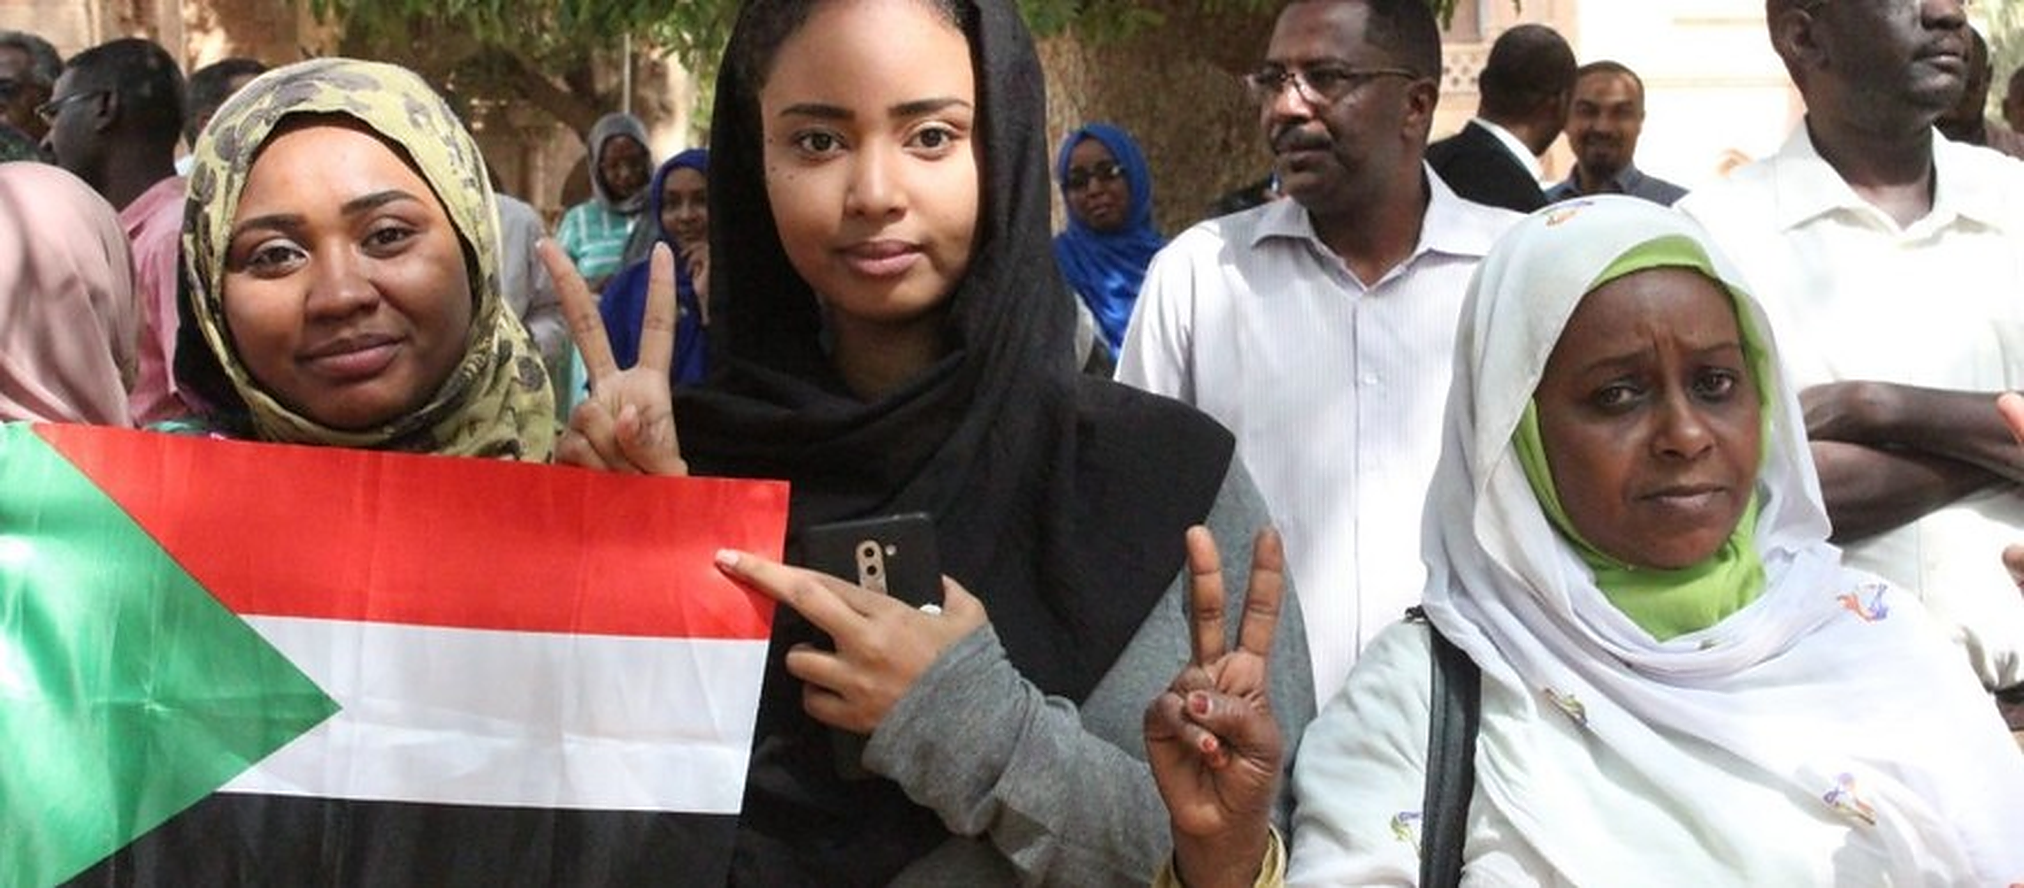 Sudan-Women-Revolution-RD-taken-with-permission.v1